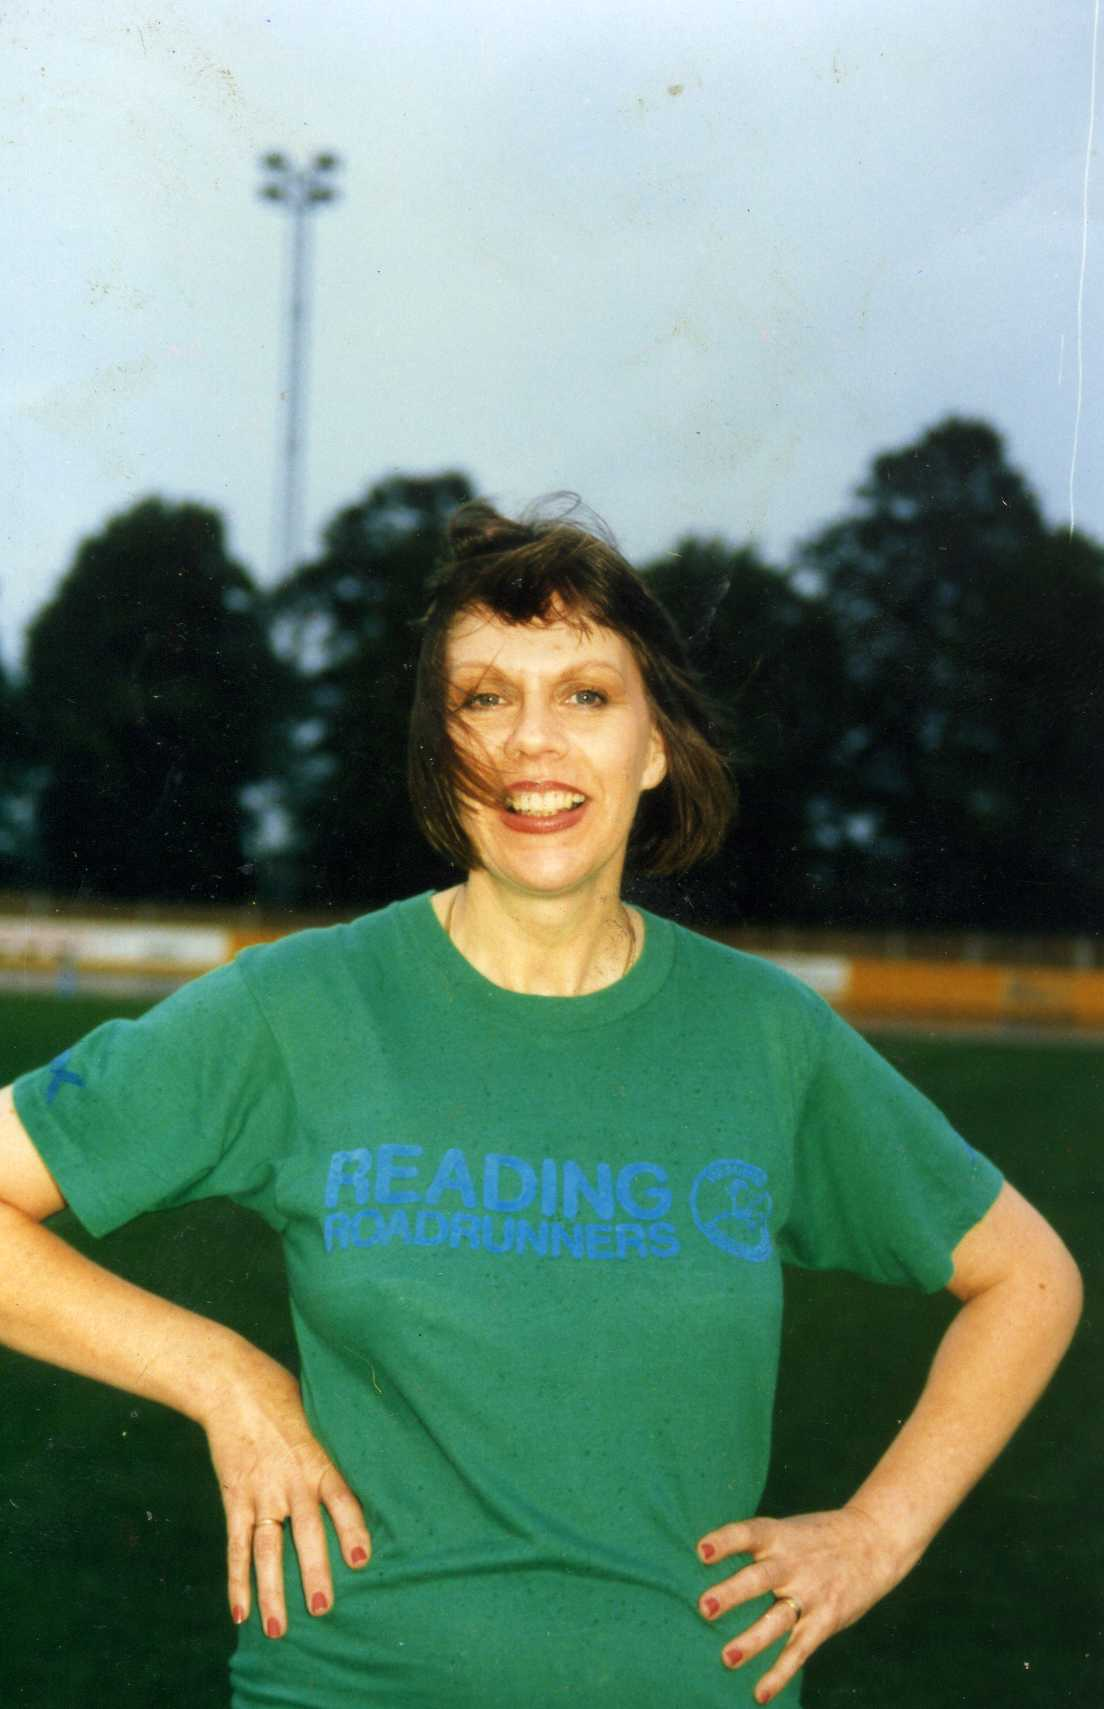 https://readingroadrunners.org/wp-content/uploads/2017/04/Club_members_04_1987.jpg